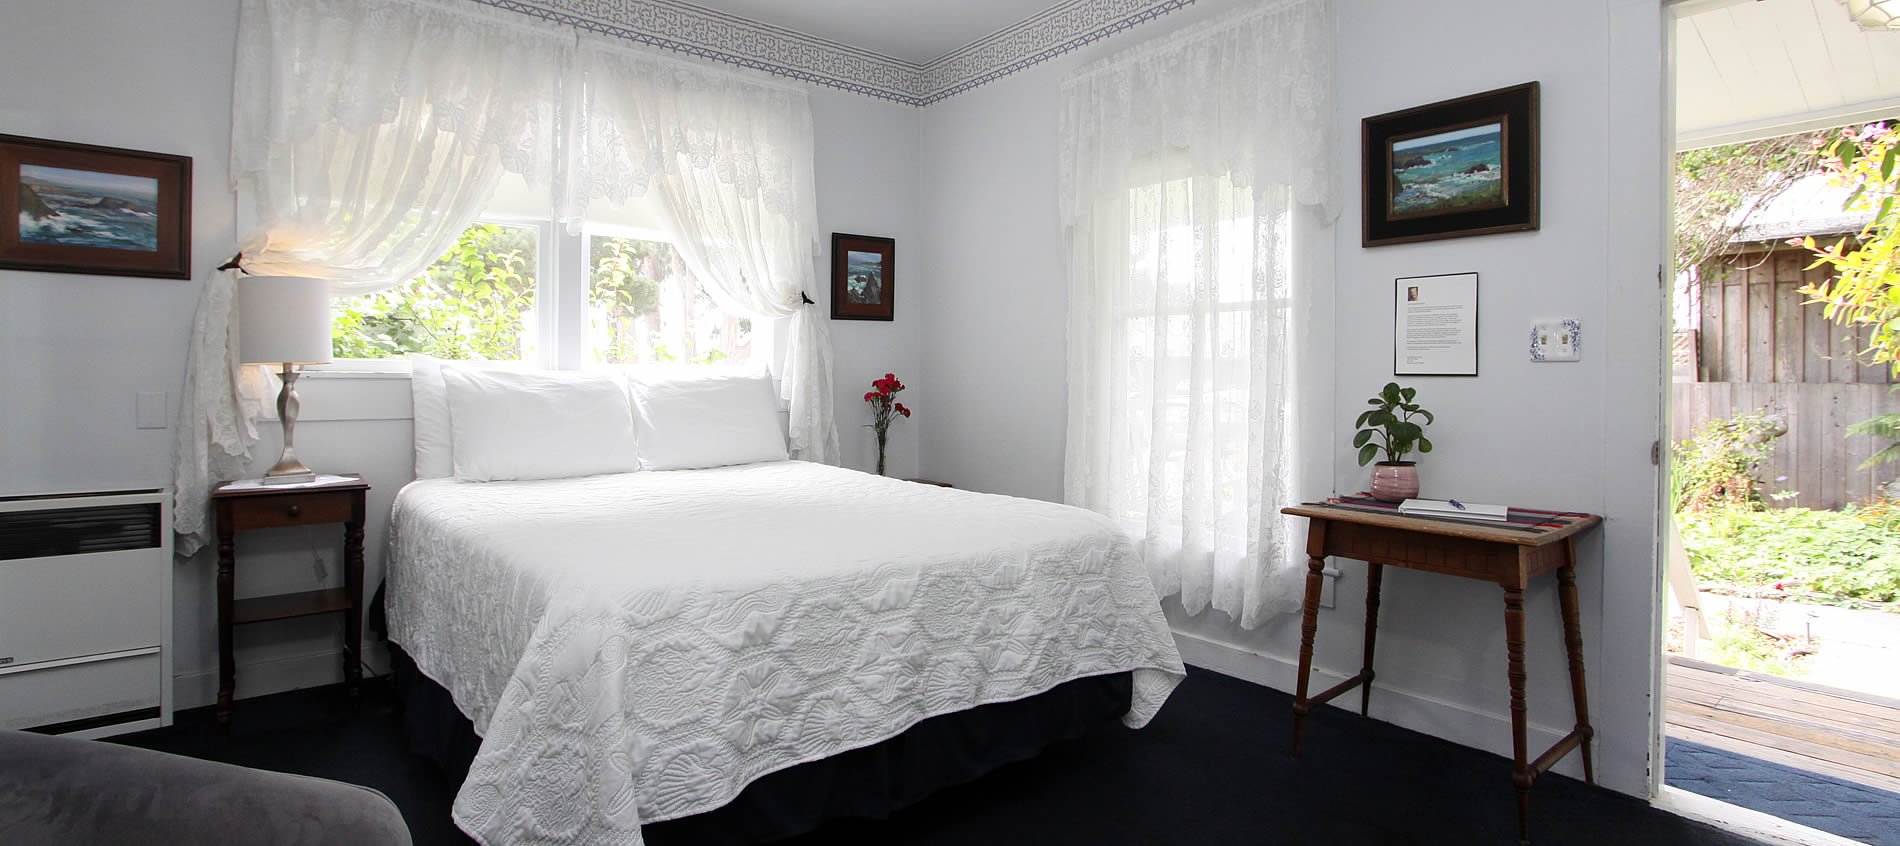 seagull inn guestroom with bed and windows